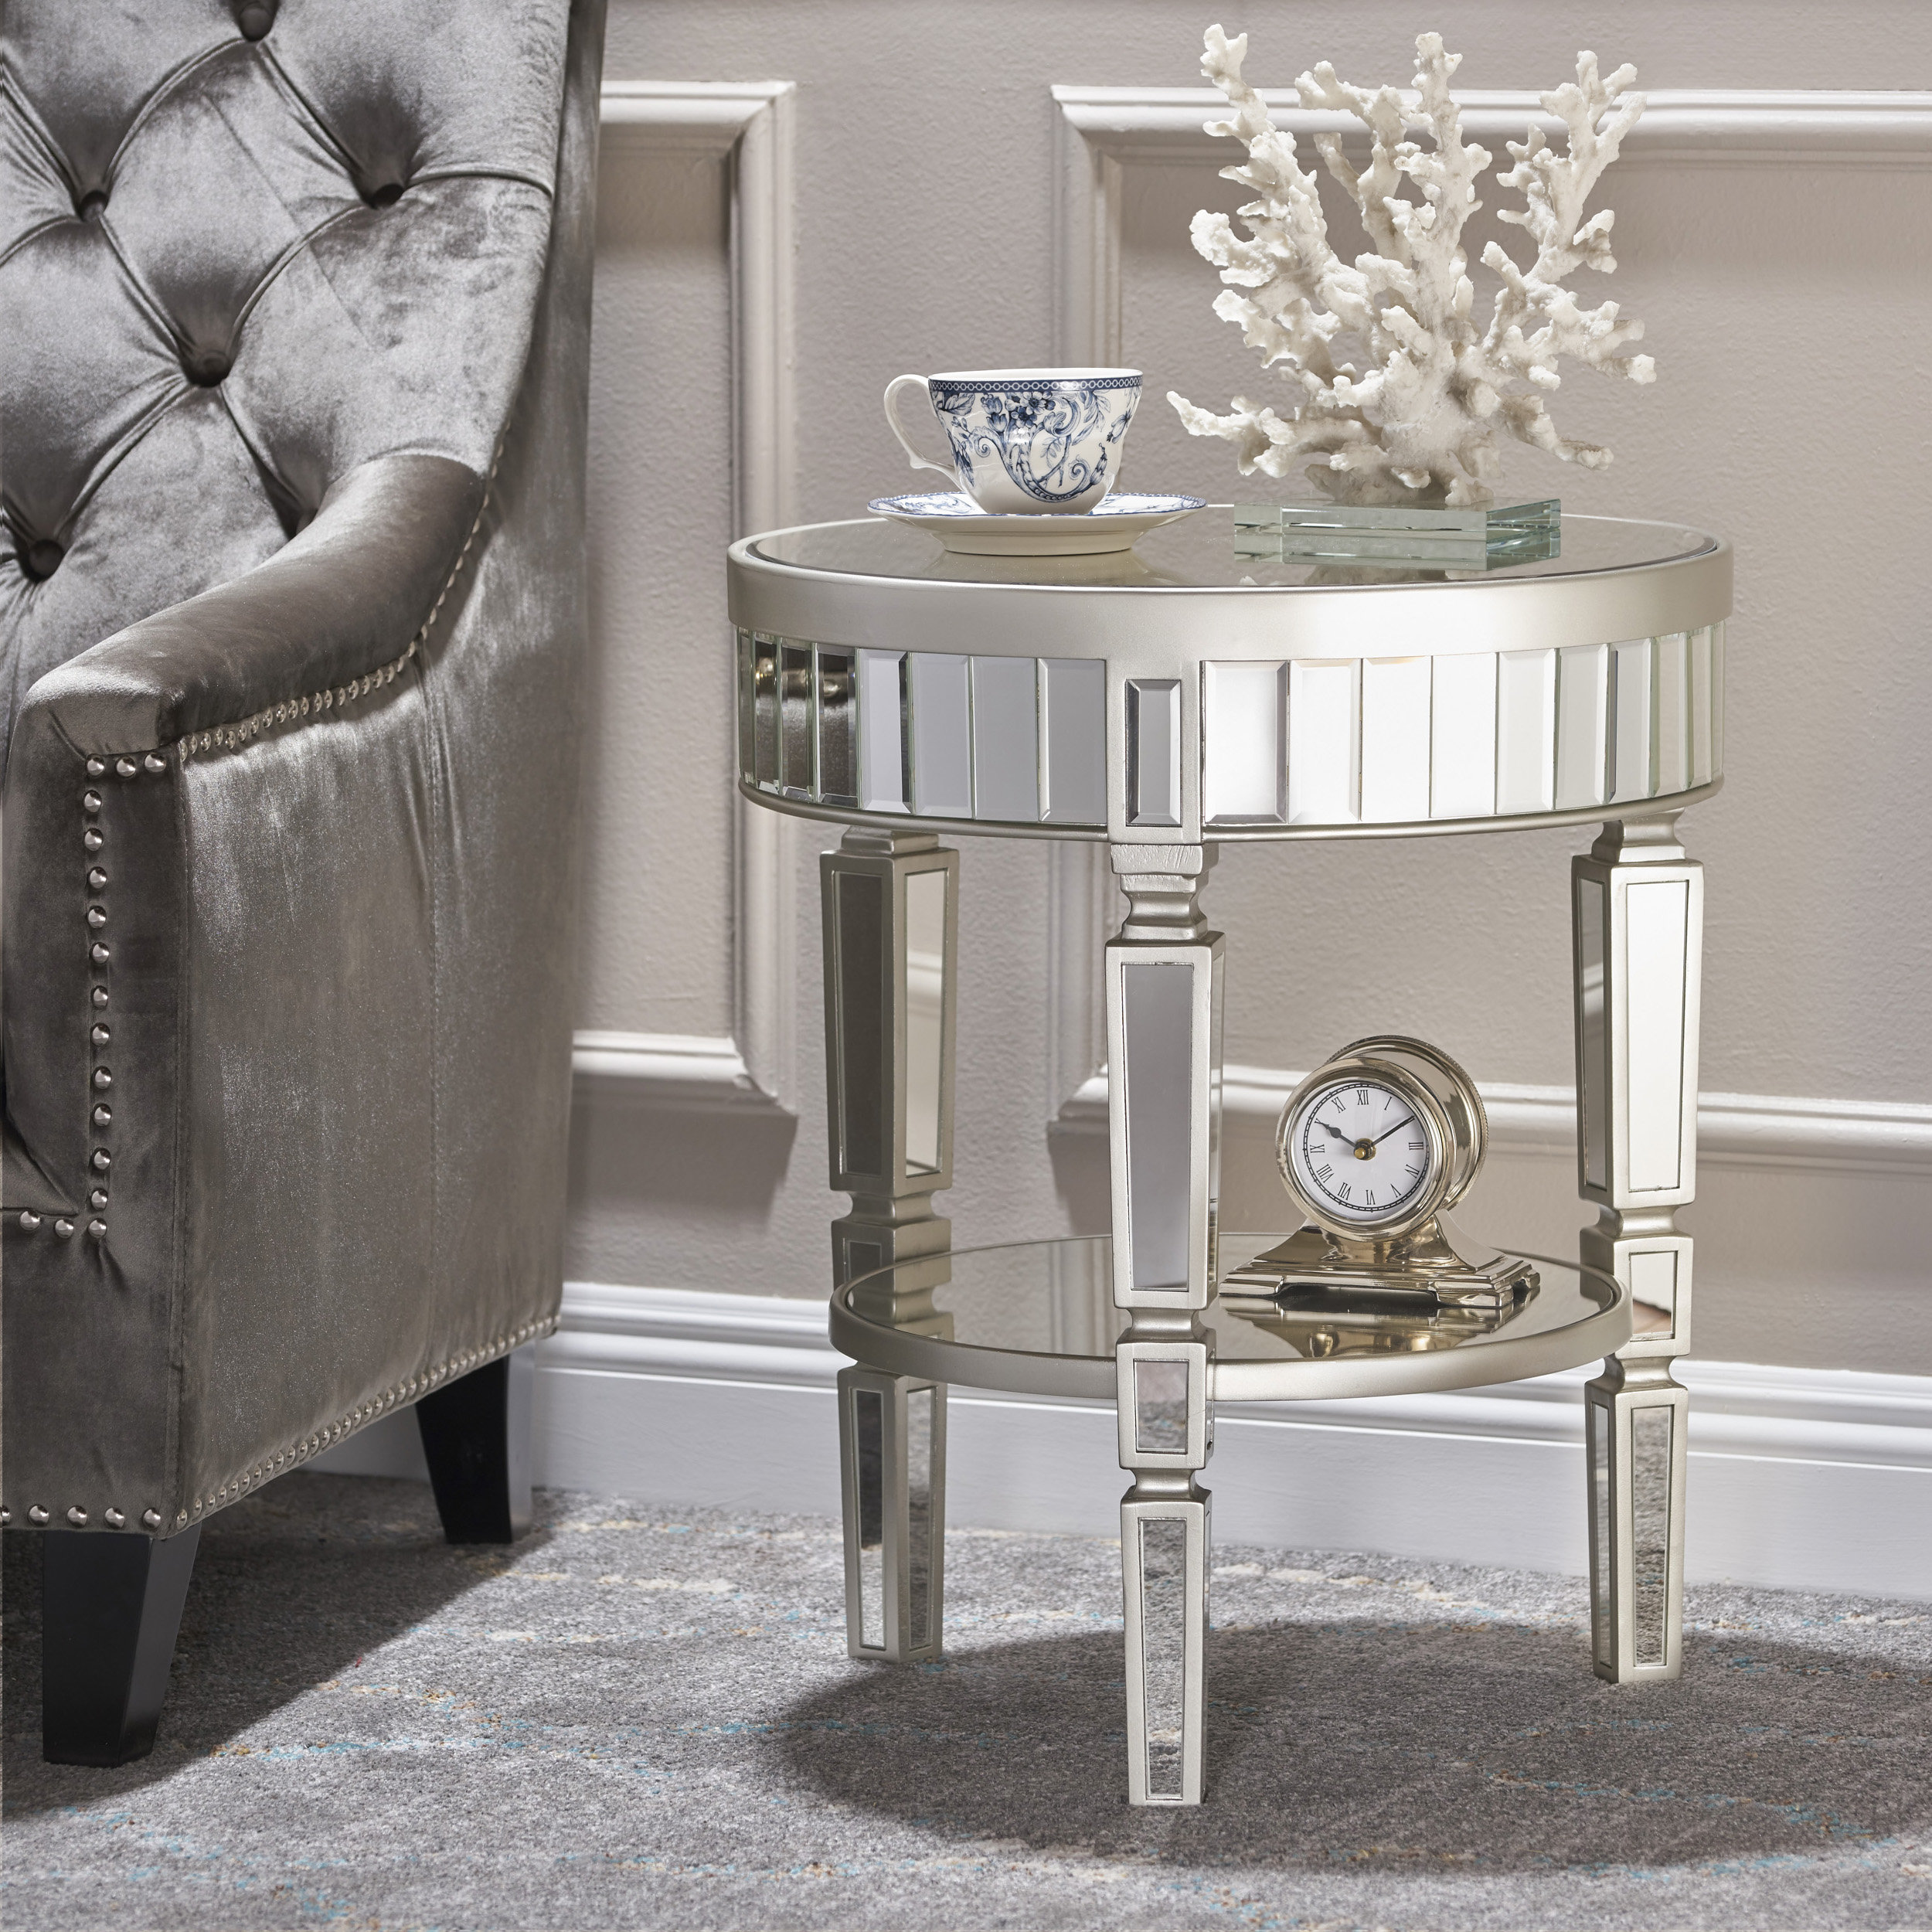 lemmon mirrored end table reviews joss main pipe making wood stone top side powell home furnishings cuisinart meat claws small acrylic distressed round pedestal dining crate ideas